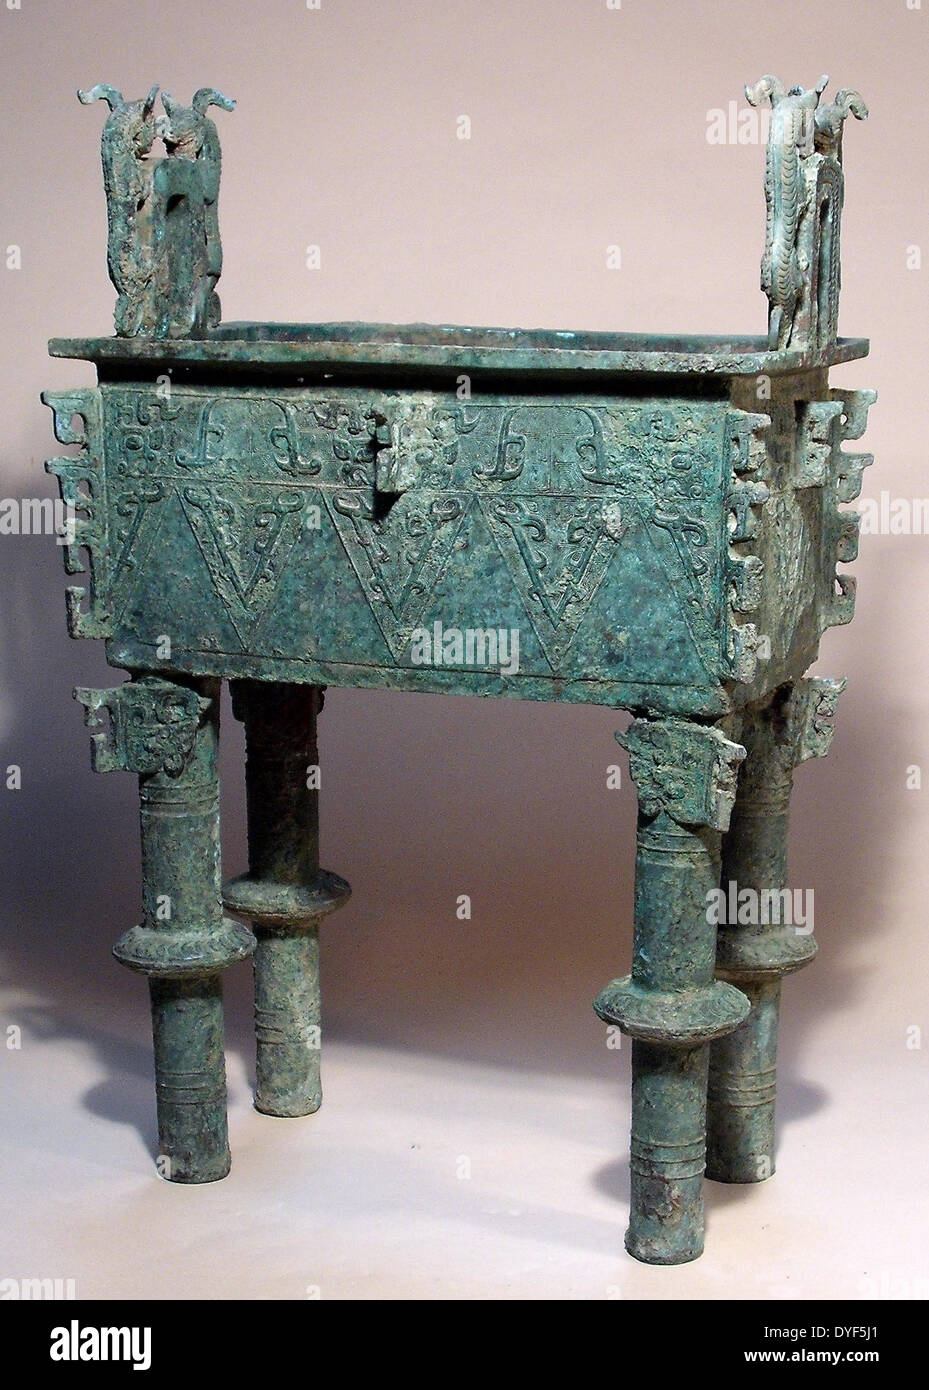 Ancient China: Food vessel  (Fang Ding),  Western Zhou Dynasty, 1027 - 771 BC. Bronze. - Stock Image